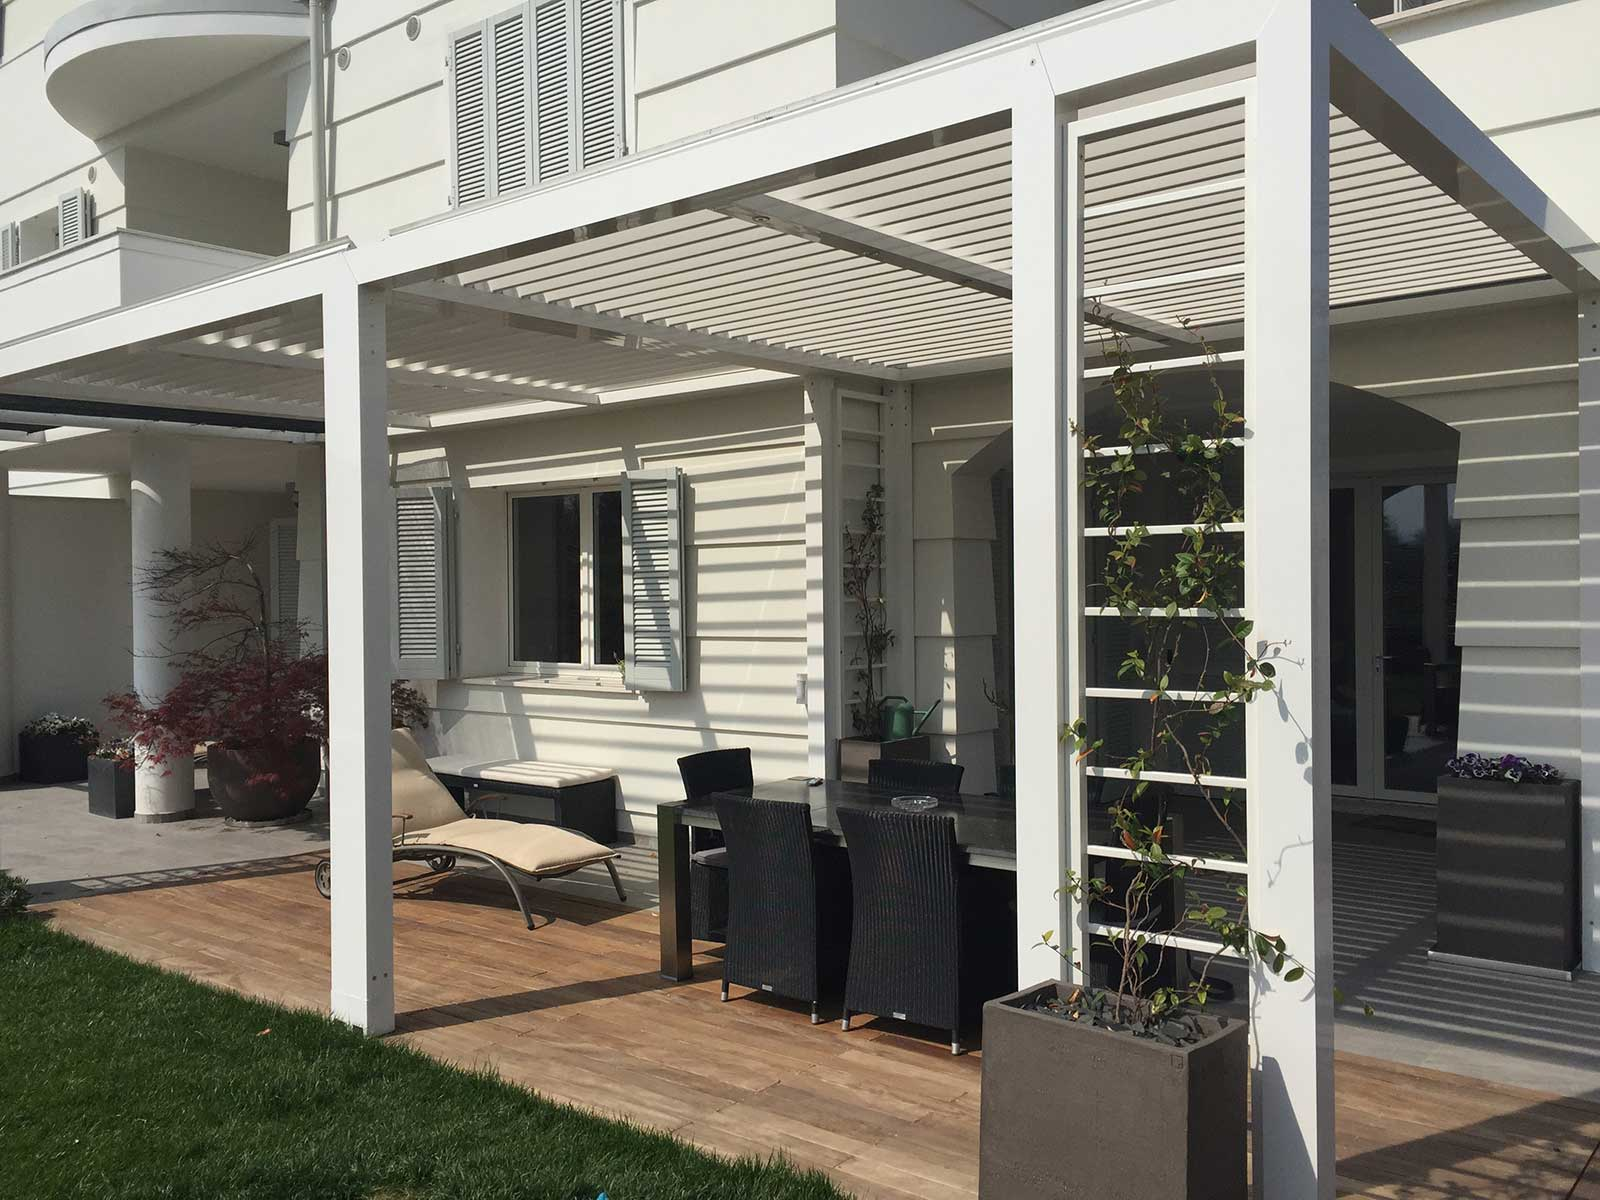 Pergola Retractable Awning Denver - Best Awning Company